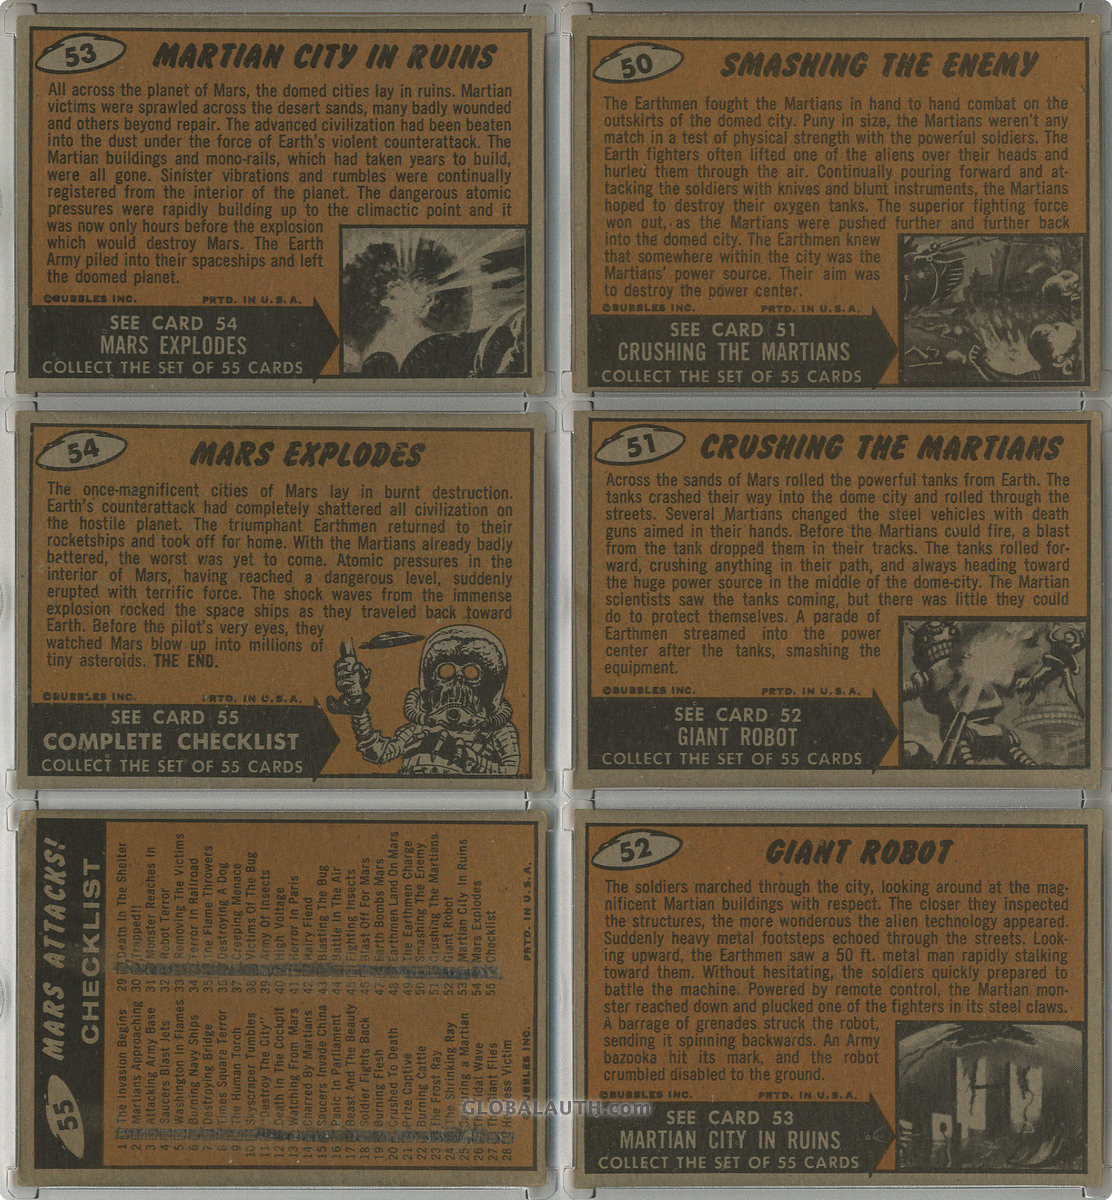 1962-mars-attacks-non-sports-card-set-back-image.jpg, #17